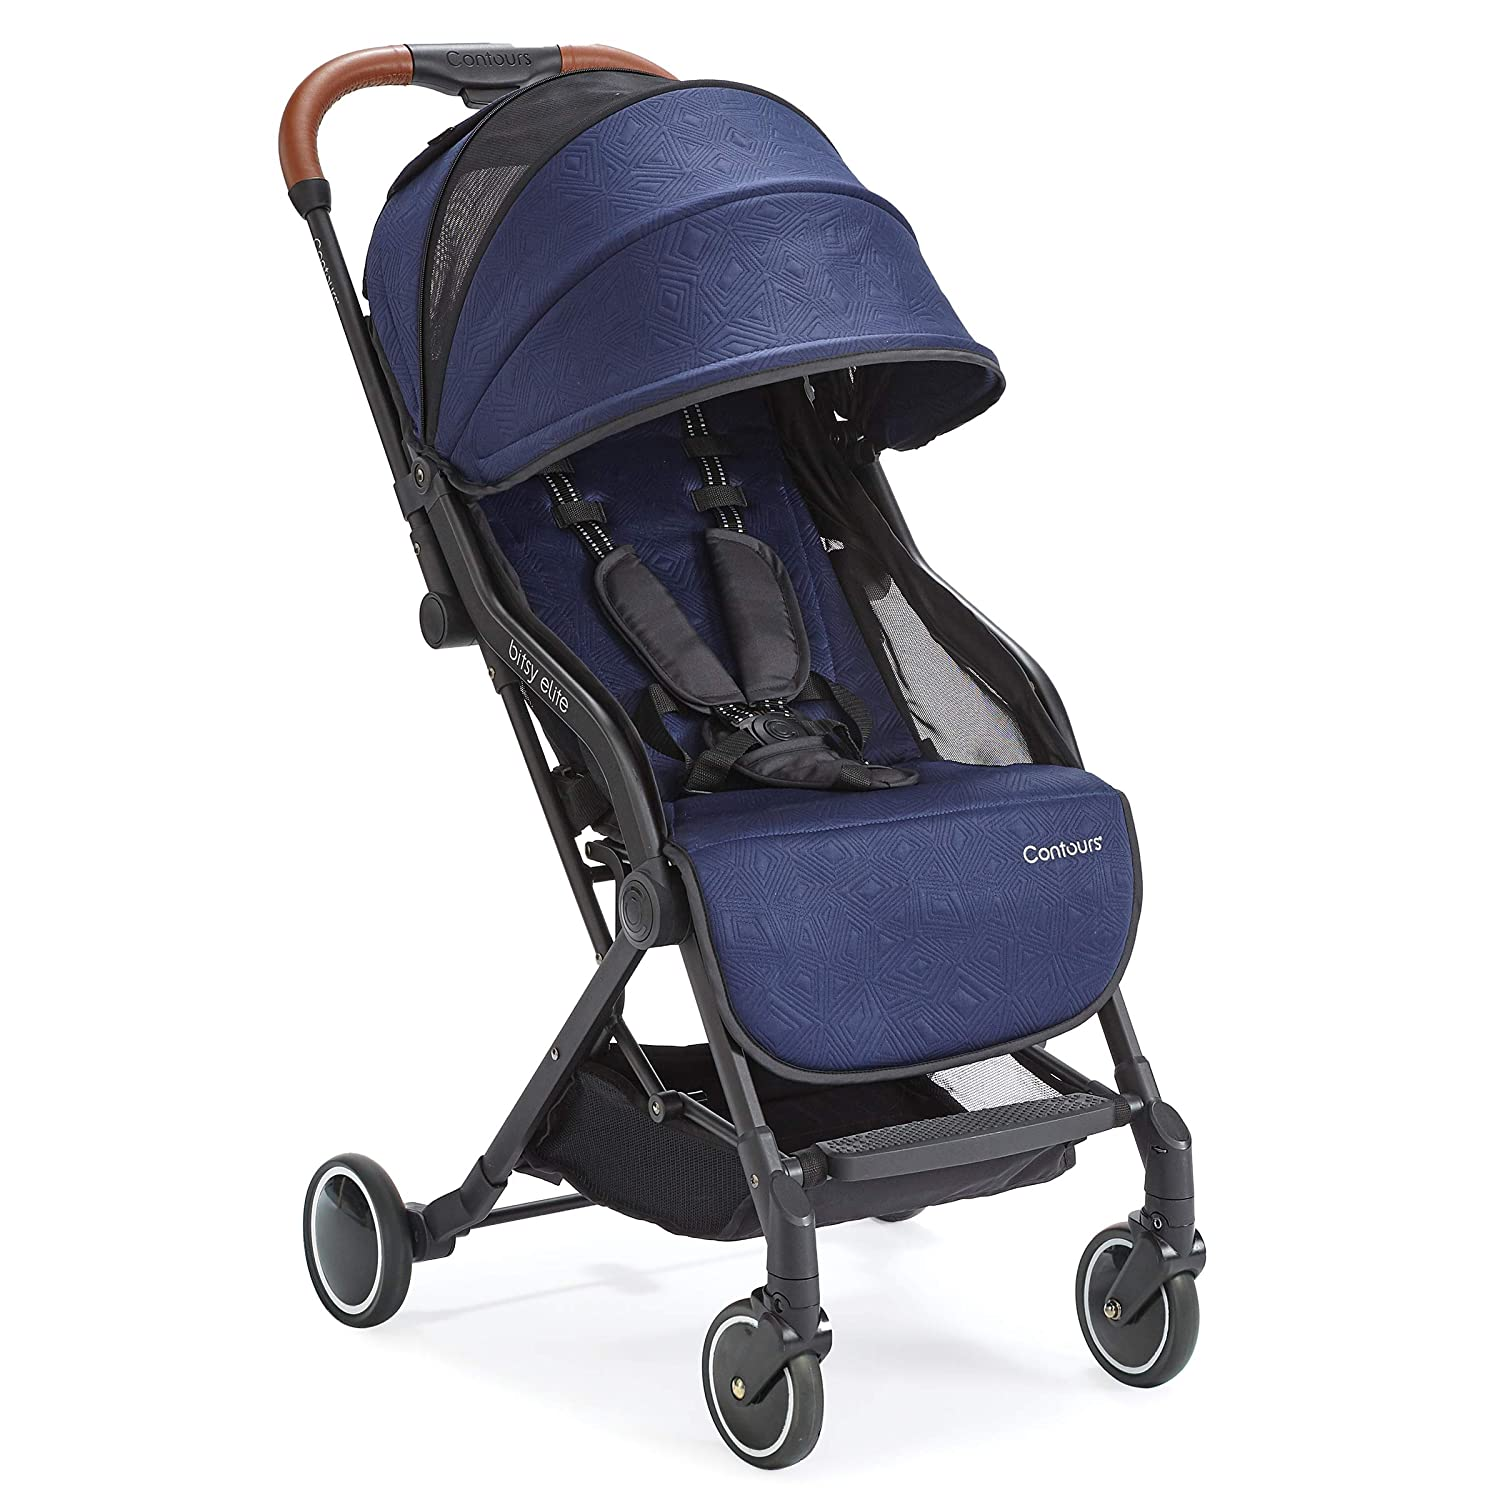 Contours Bitsy Elite Compact Fold Lightweight Stroller for Travel, Airplane Friendly, Adapter Free Car Seat Compatibility, Sapphire Blue